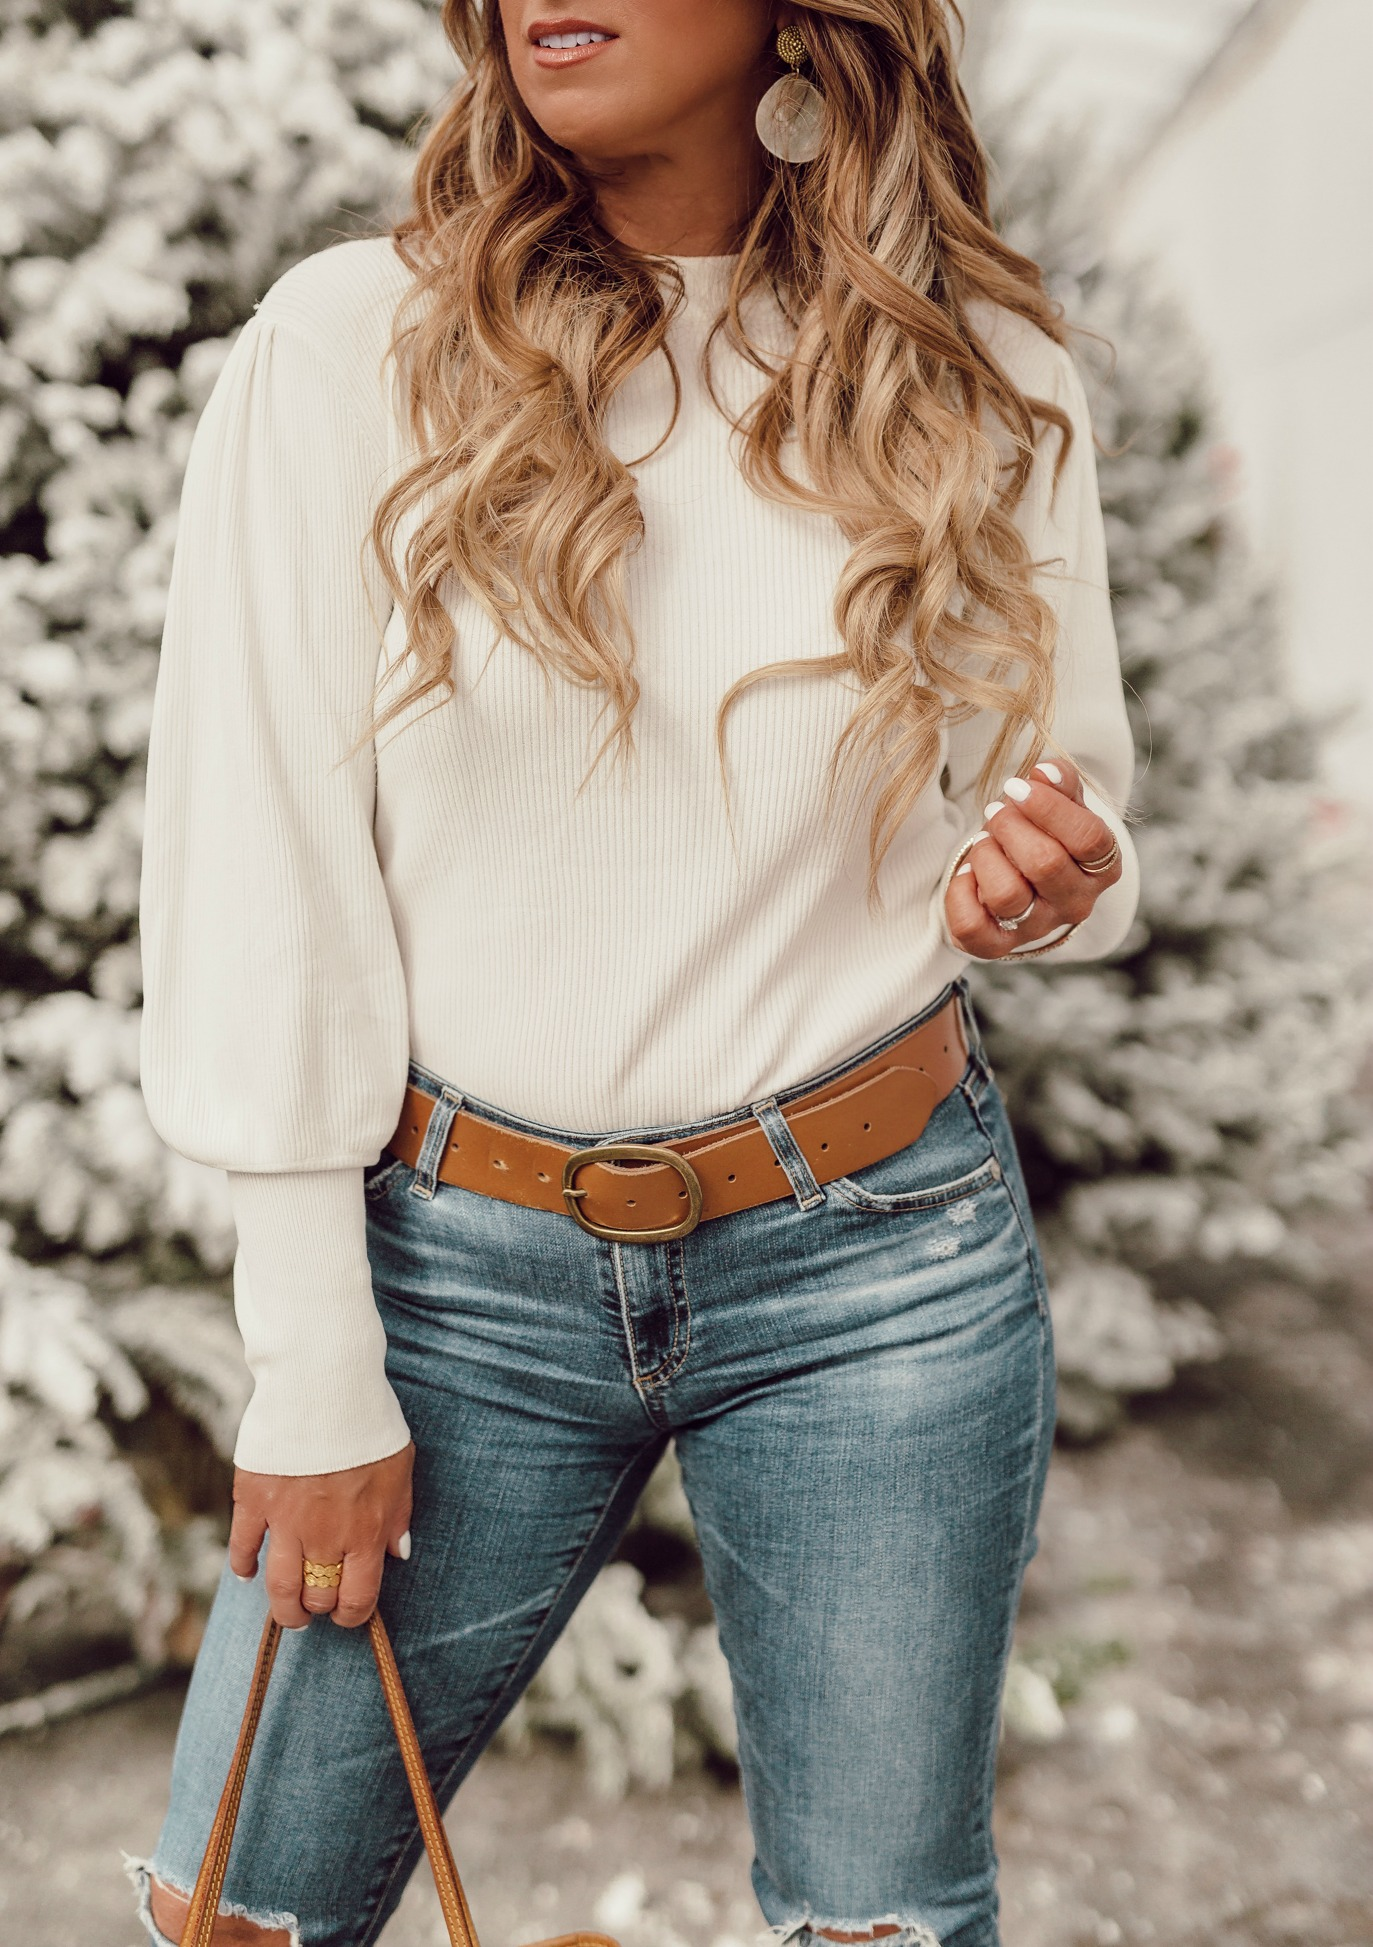 Casual winter outfit inspiration